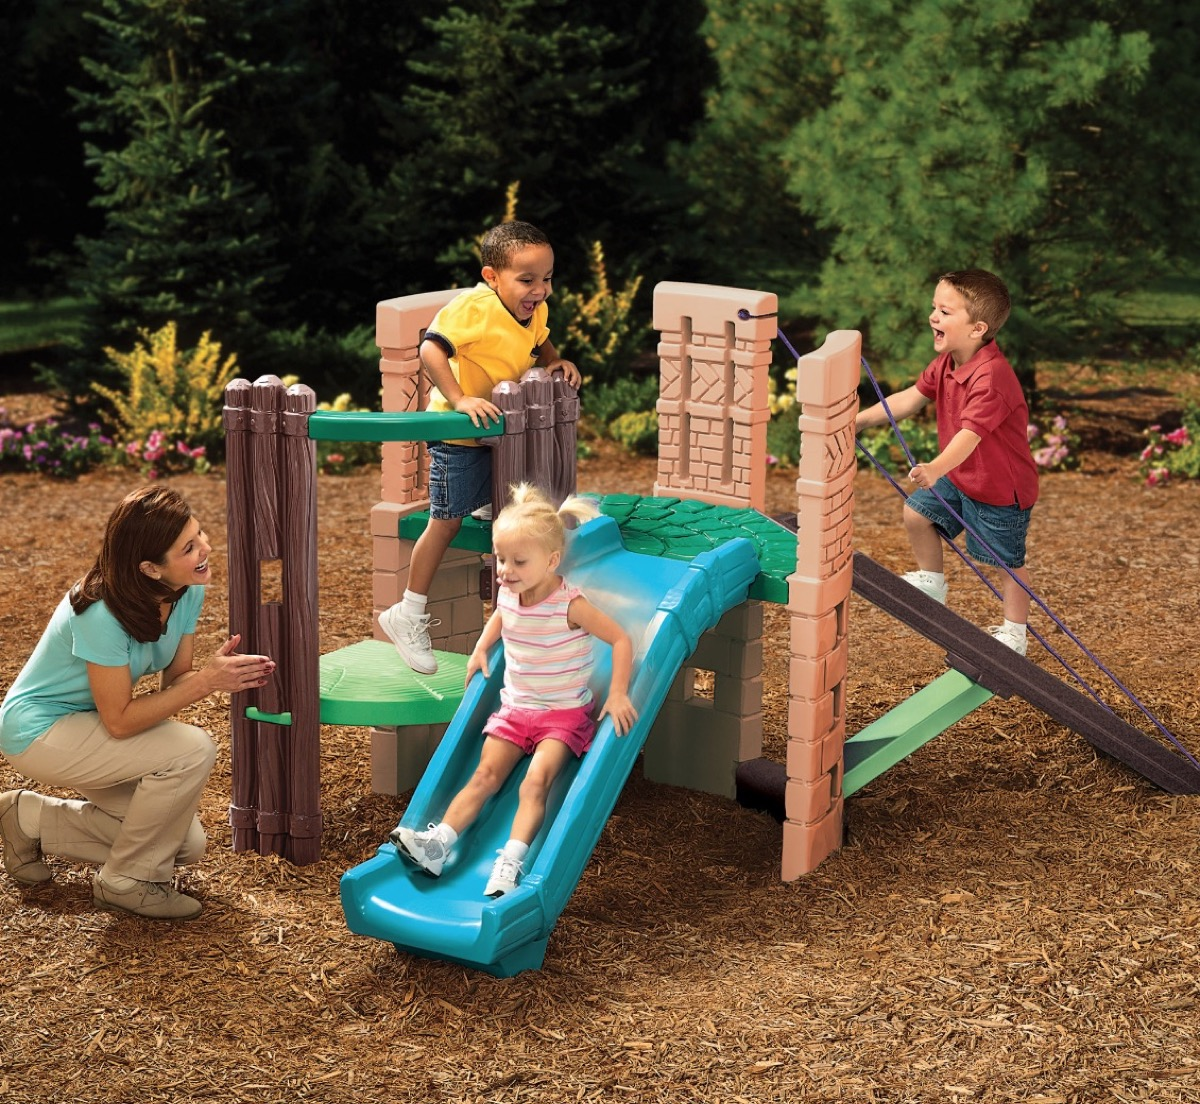 castle themed outdoor playset with slide, best outdoor toys for toddlers